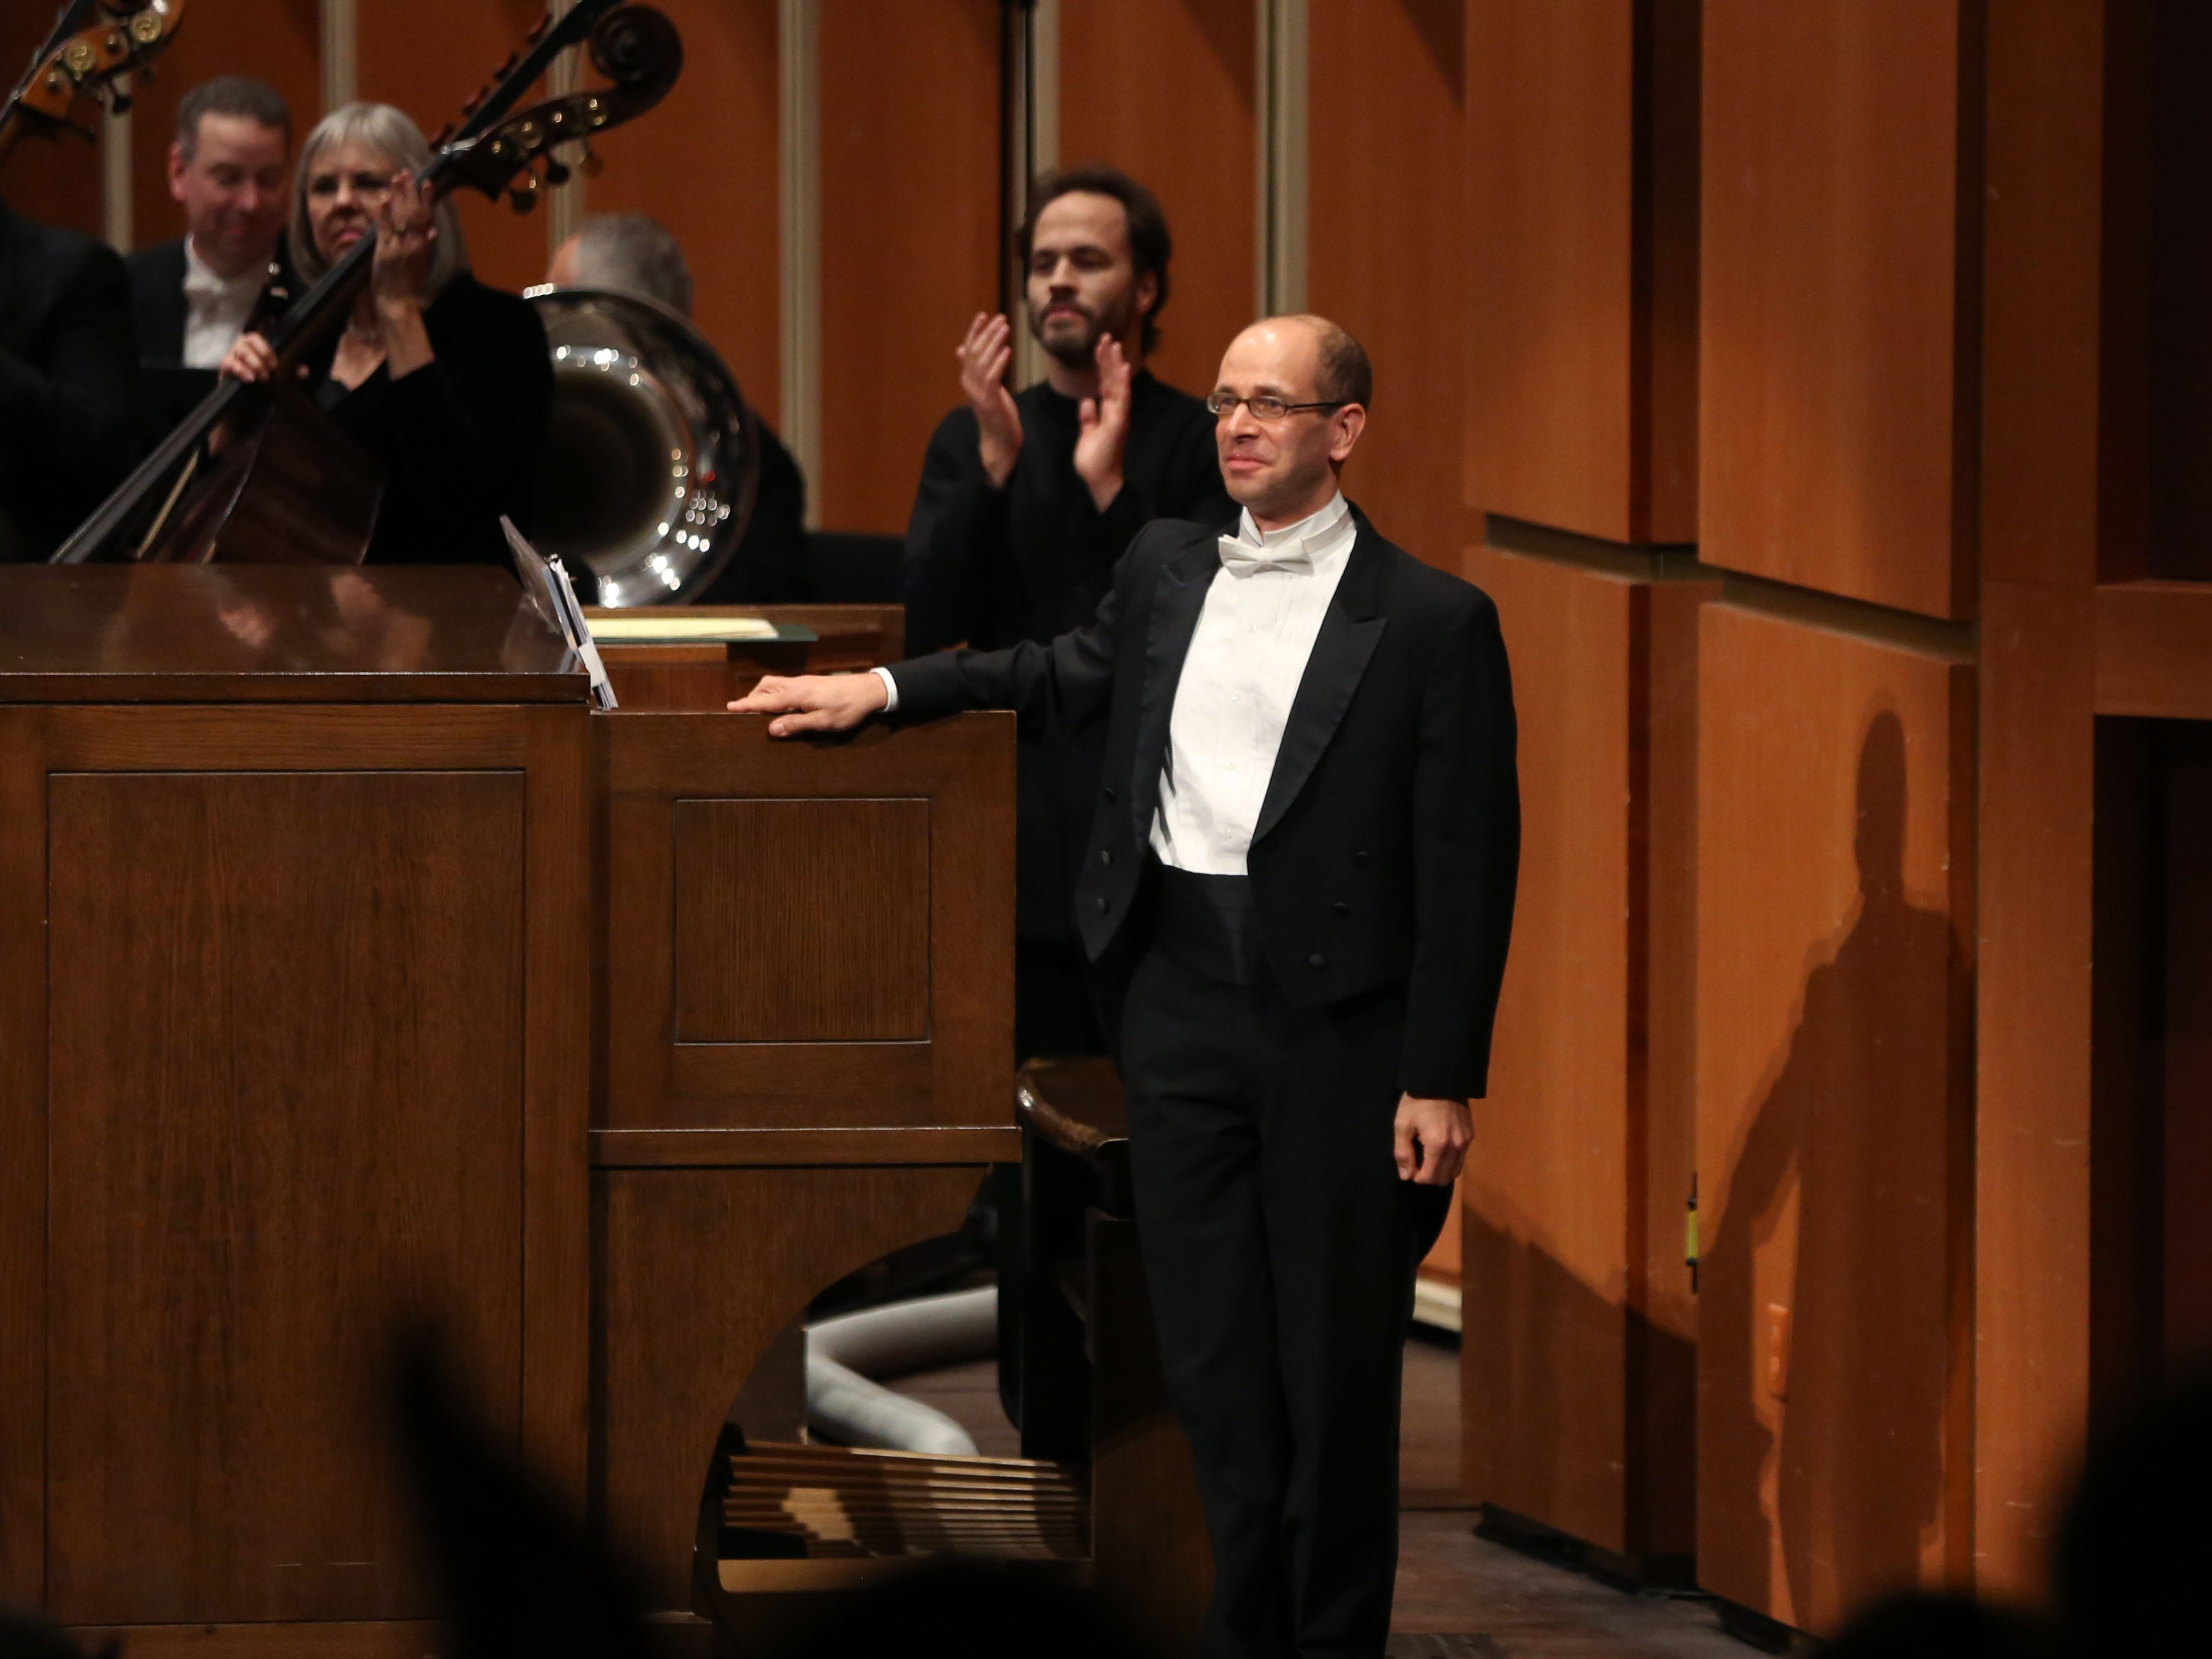 Conductor Johannes Debus, in back, leads the applause for Milwaukee Symphony and organist David Jonies after their performance of Camille Saint-Saens' Symphony No 3 in C minor Saturday night at the Marcus Center.